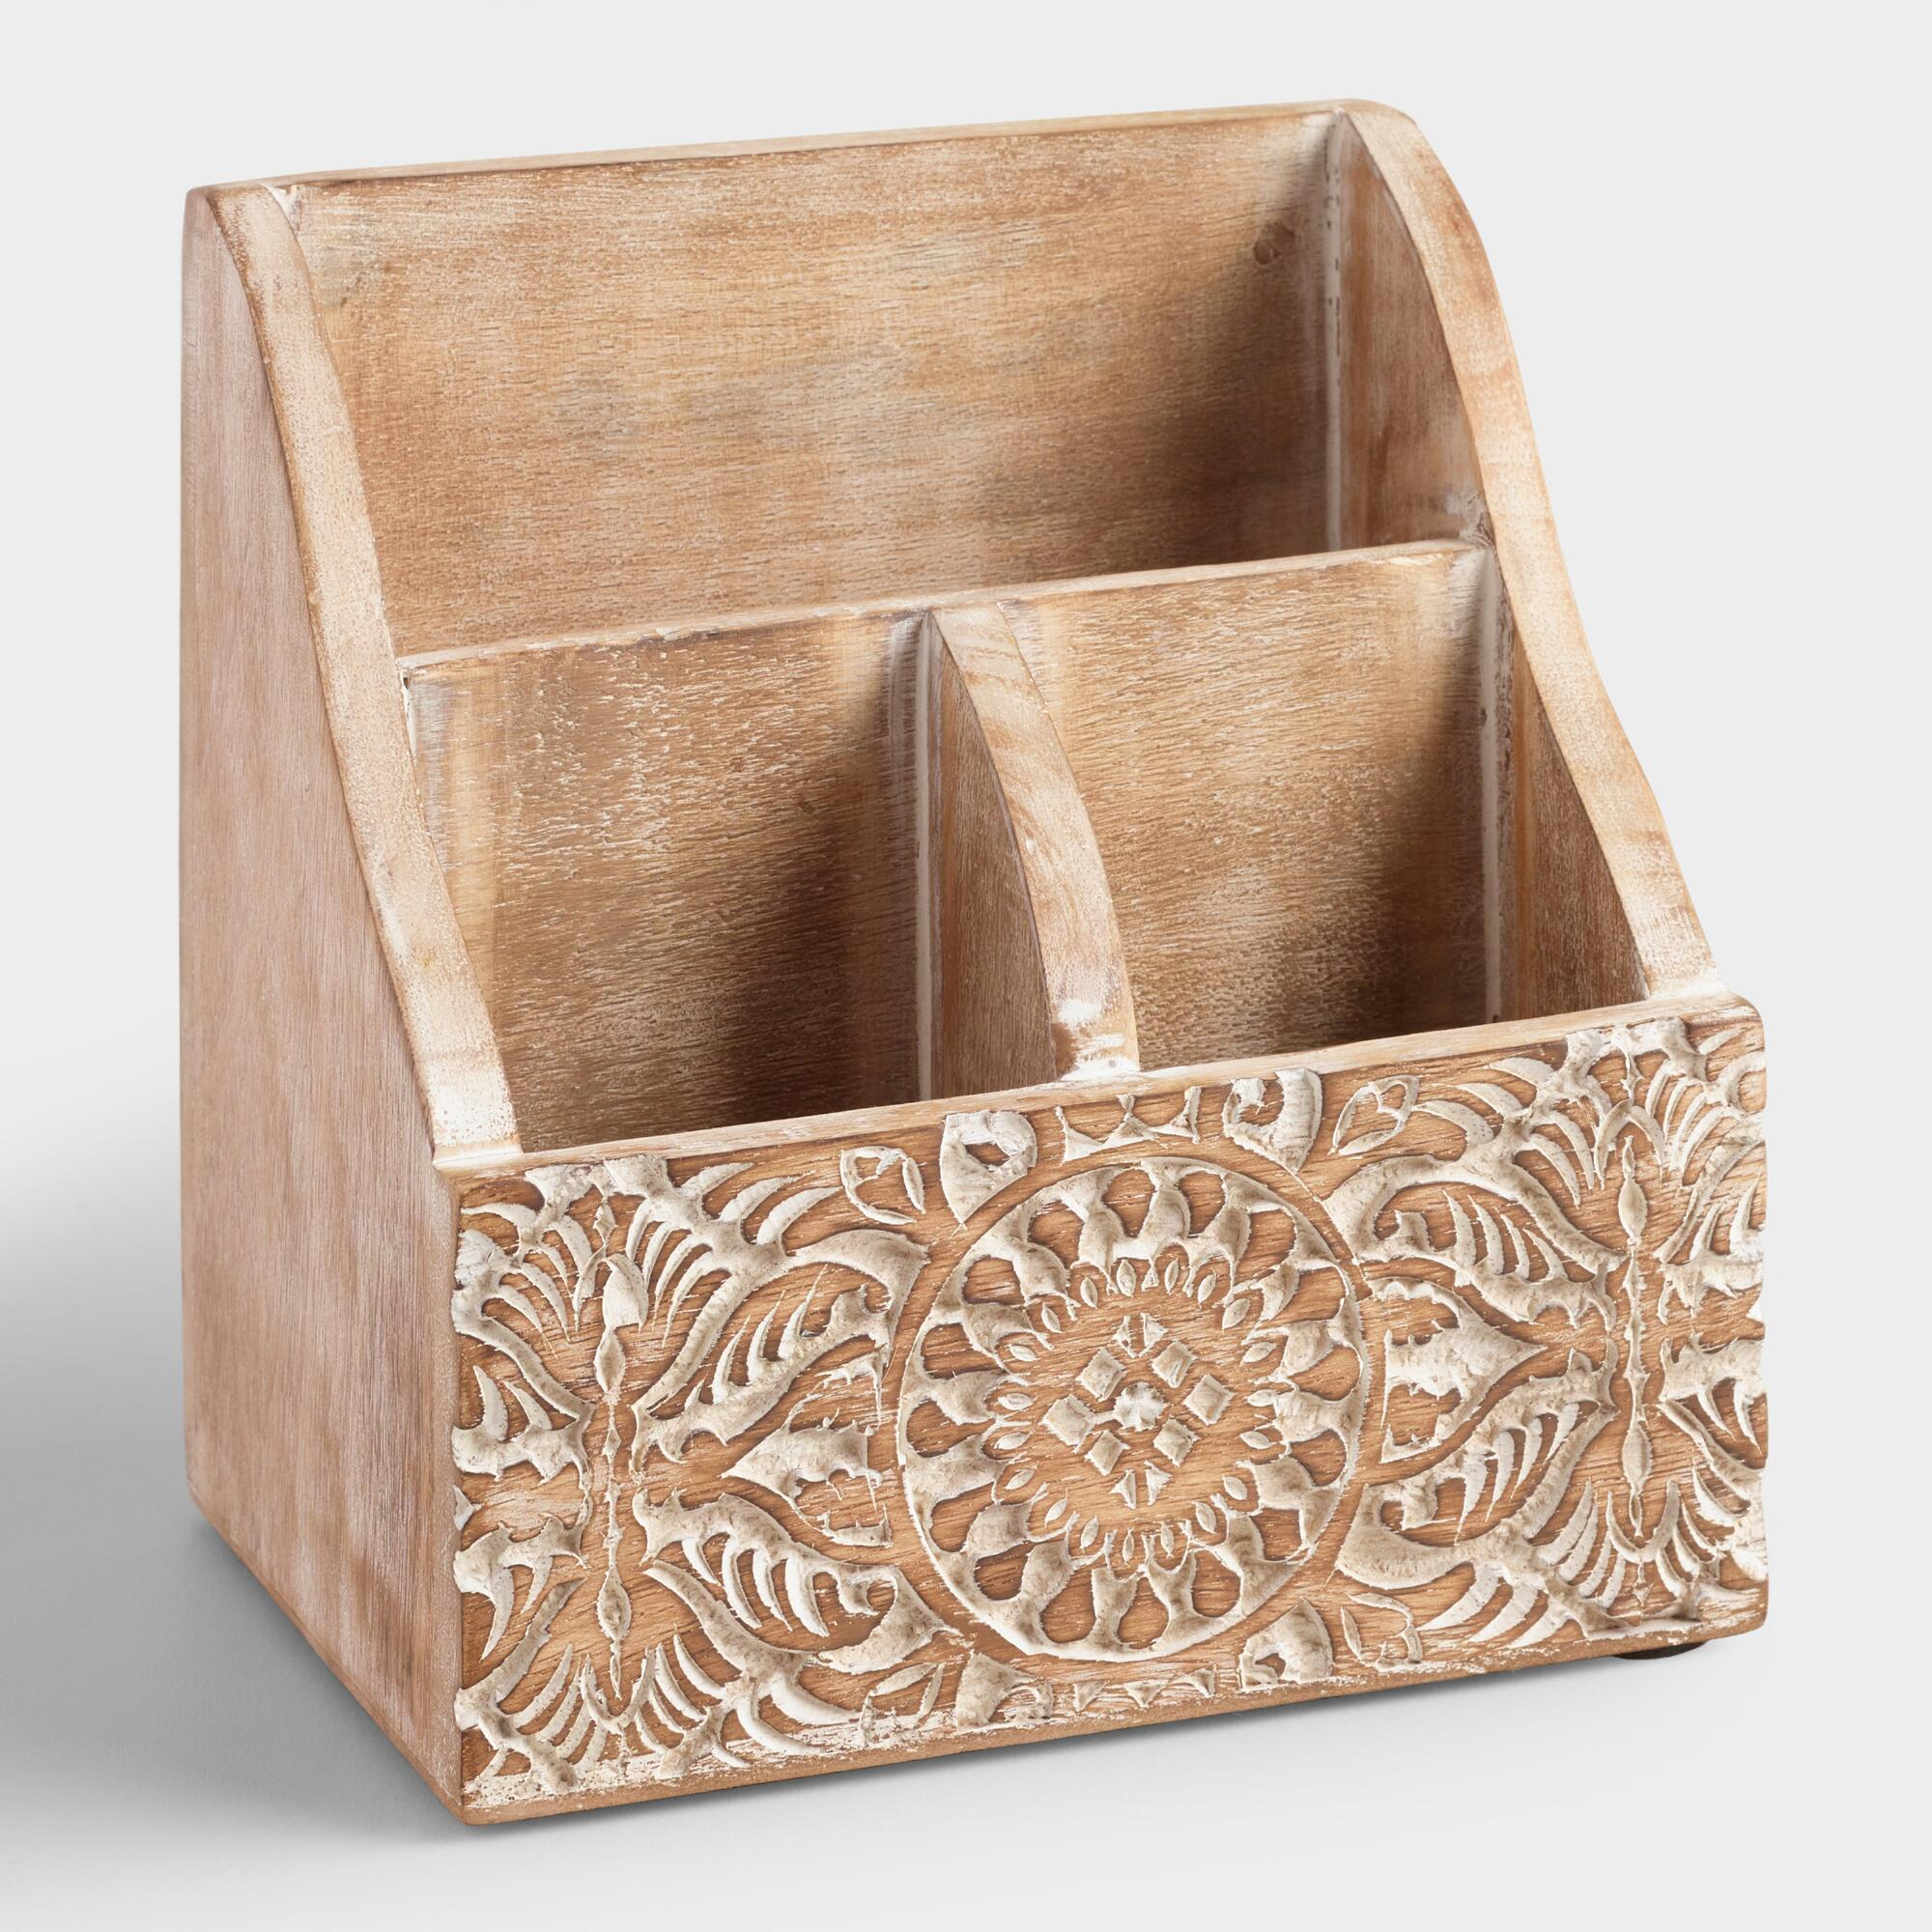 Mini Hand Carved Wood Gianna Desk Organizer World Market